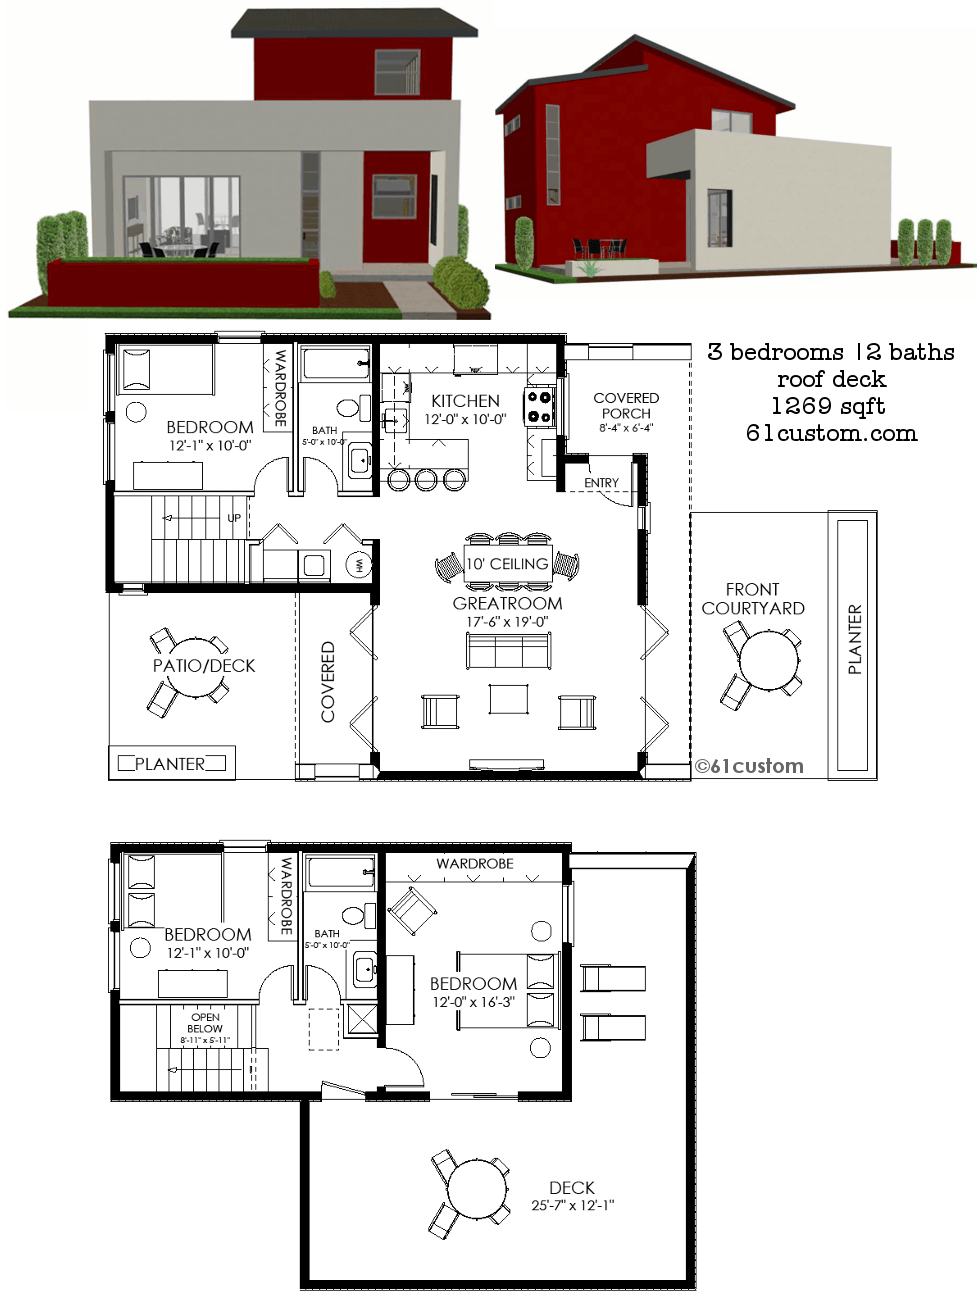 Contemporary small house plan 61custom contemporary Plan your home design